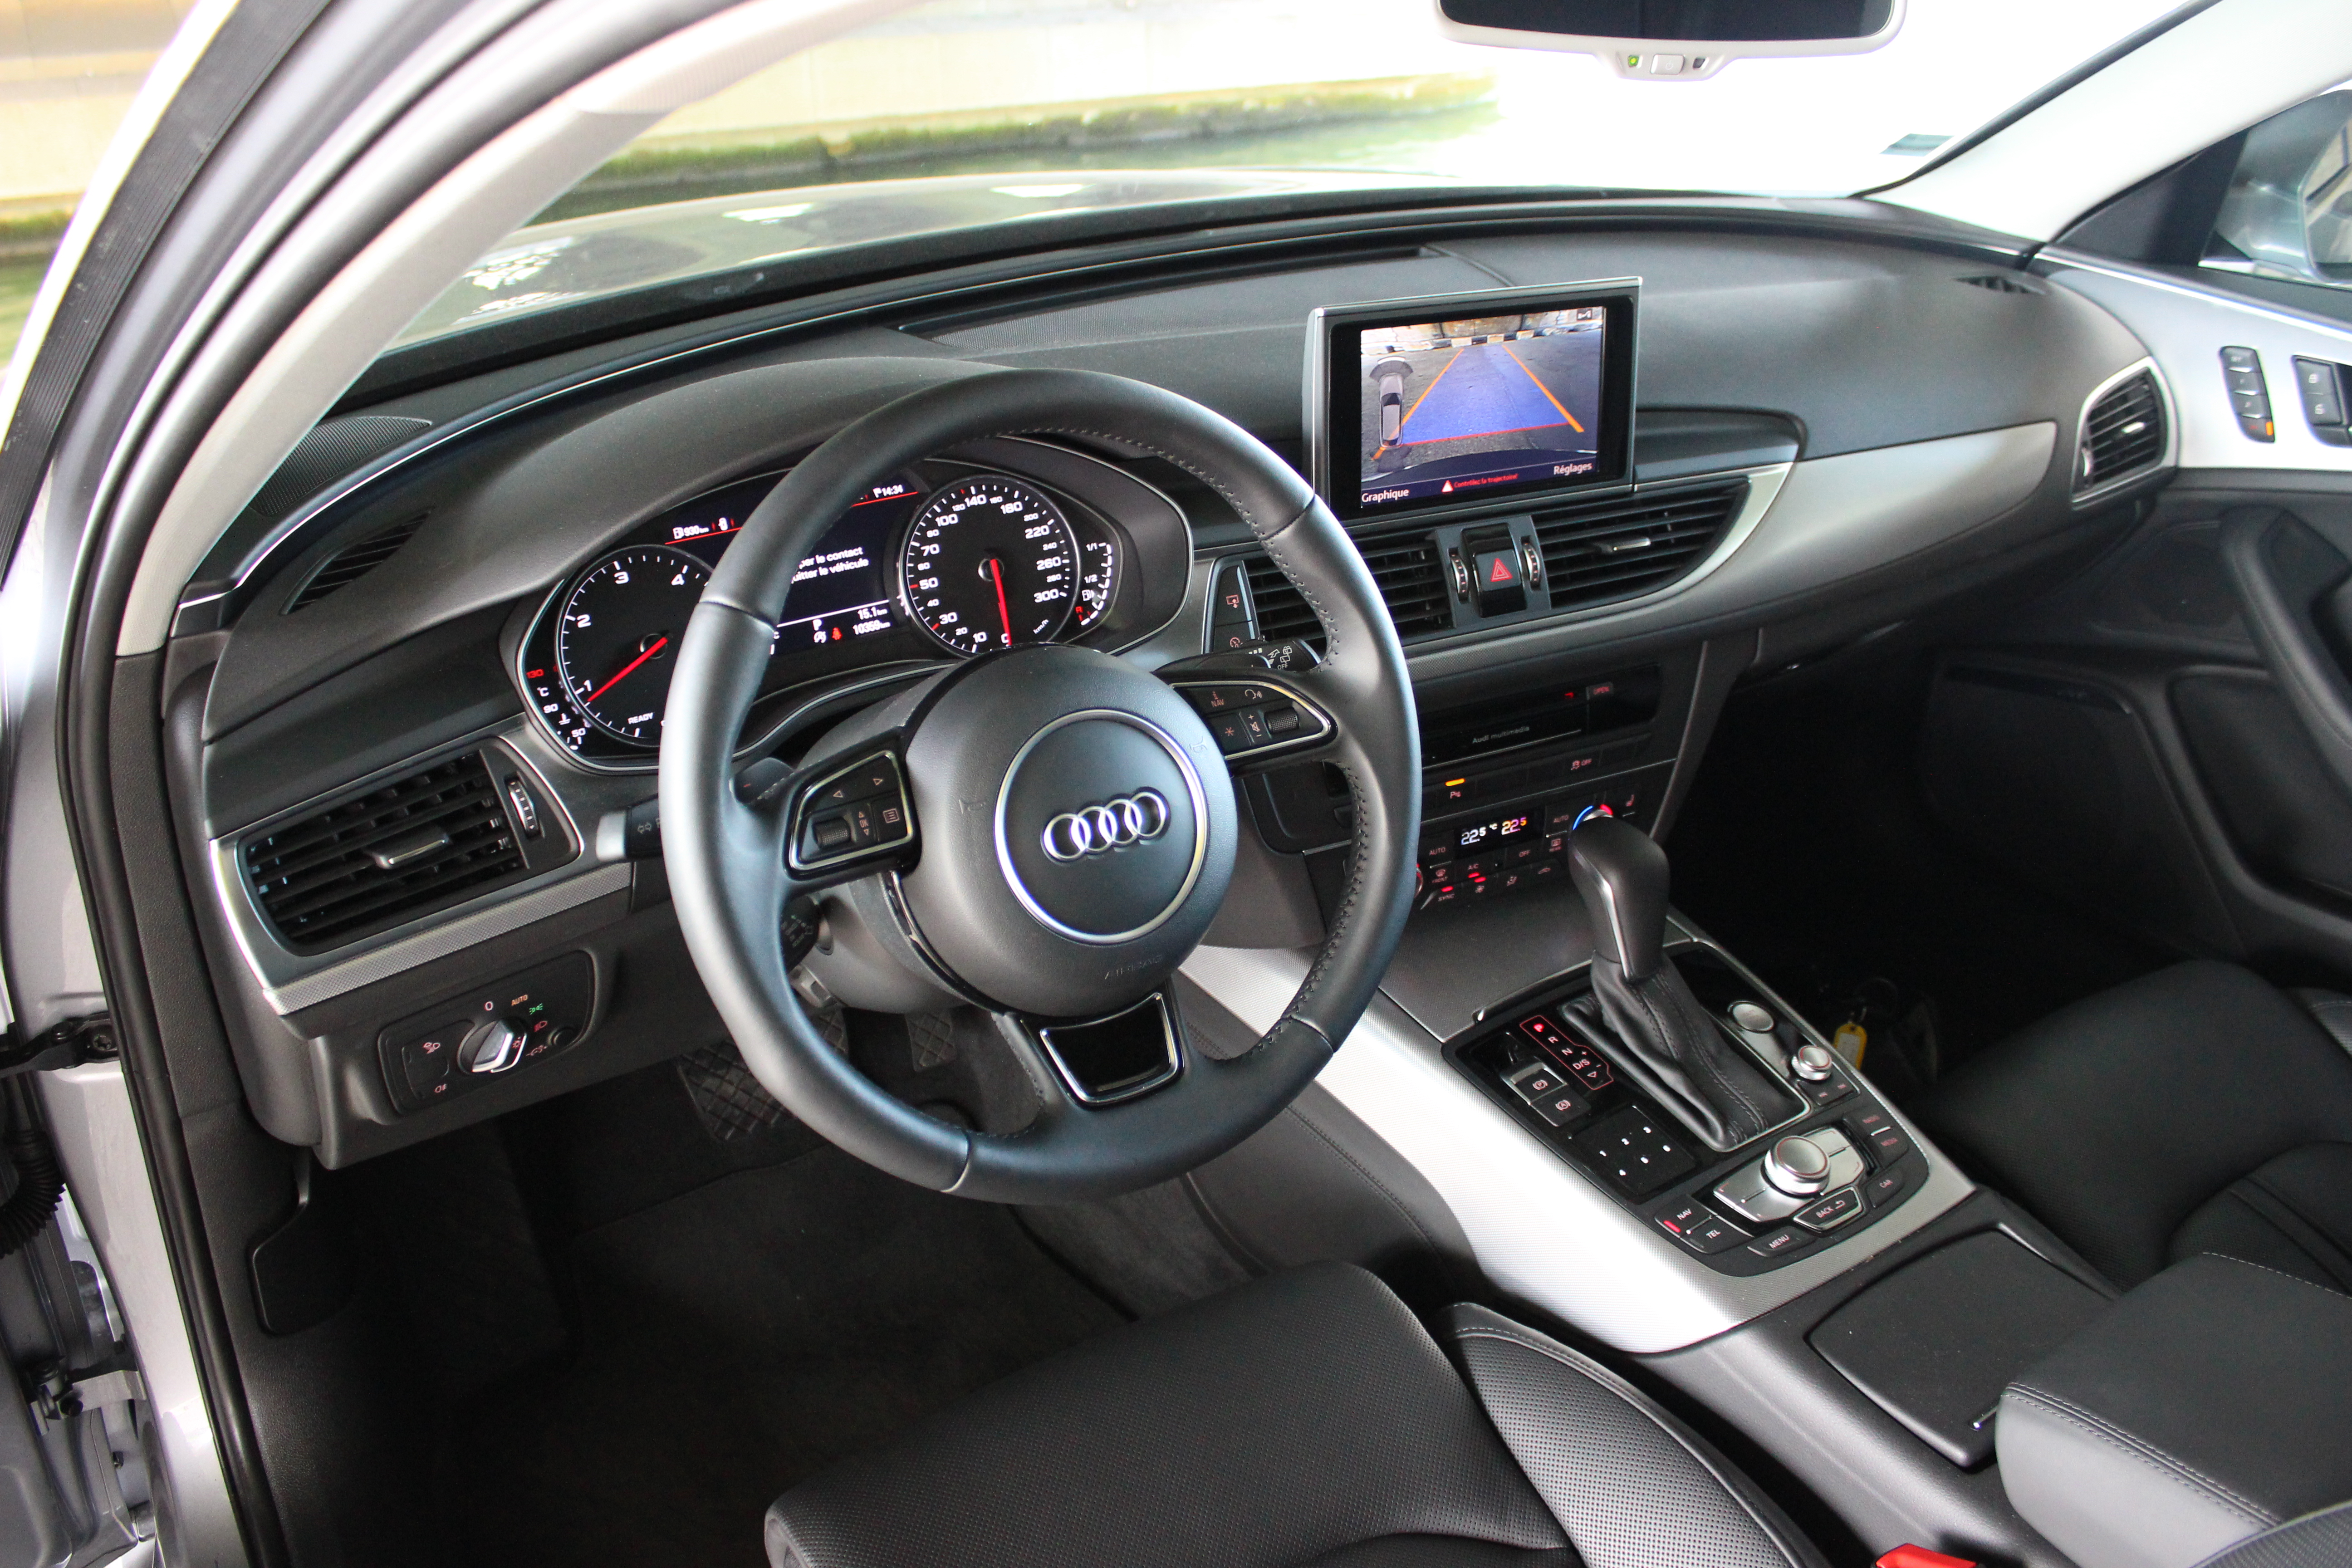 essai audi a6 avant 2 0 tdi 190 ultra supertanker. Black Bedroom Furniture Sets. Home Design Ideas